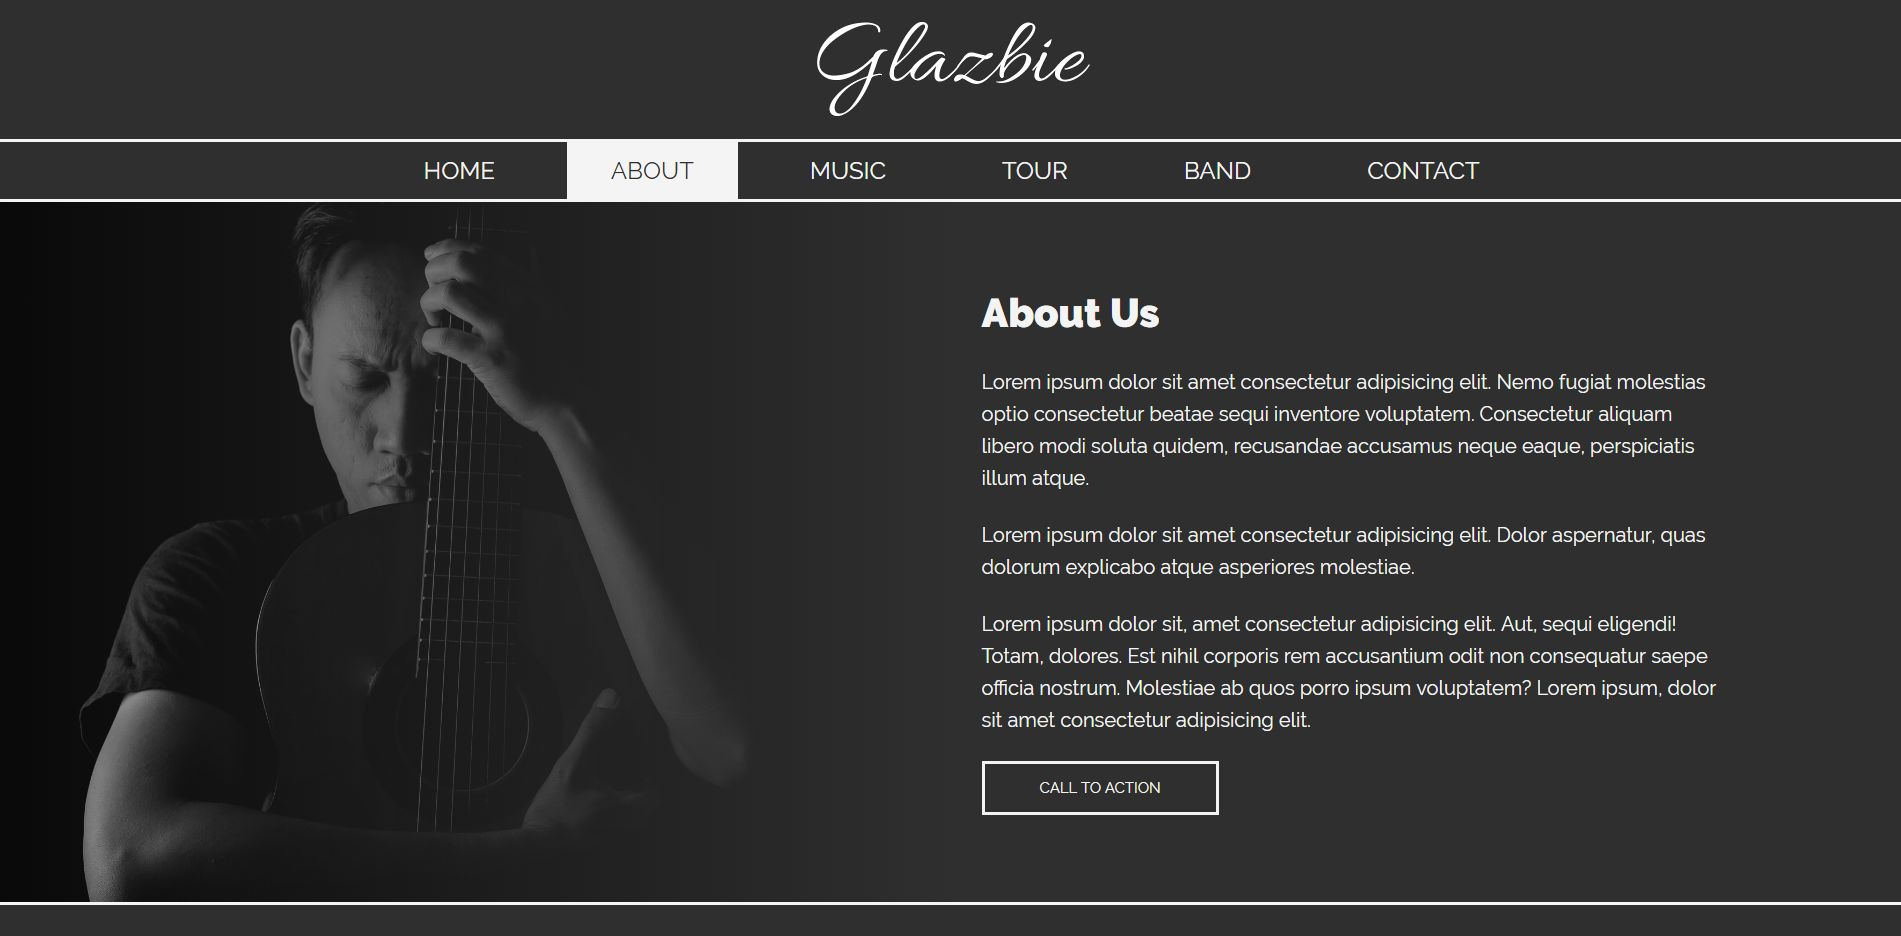 Glazbie - Template For a Band Or A Musician Screenshot 1